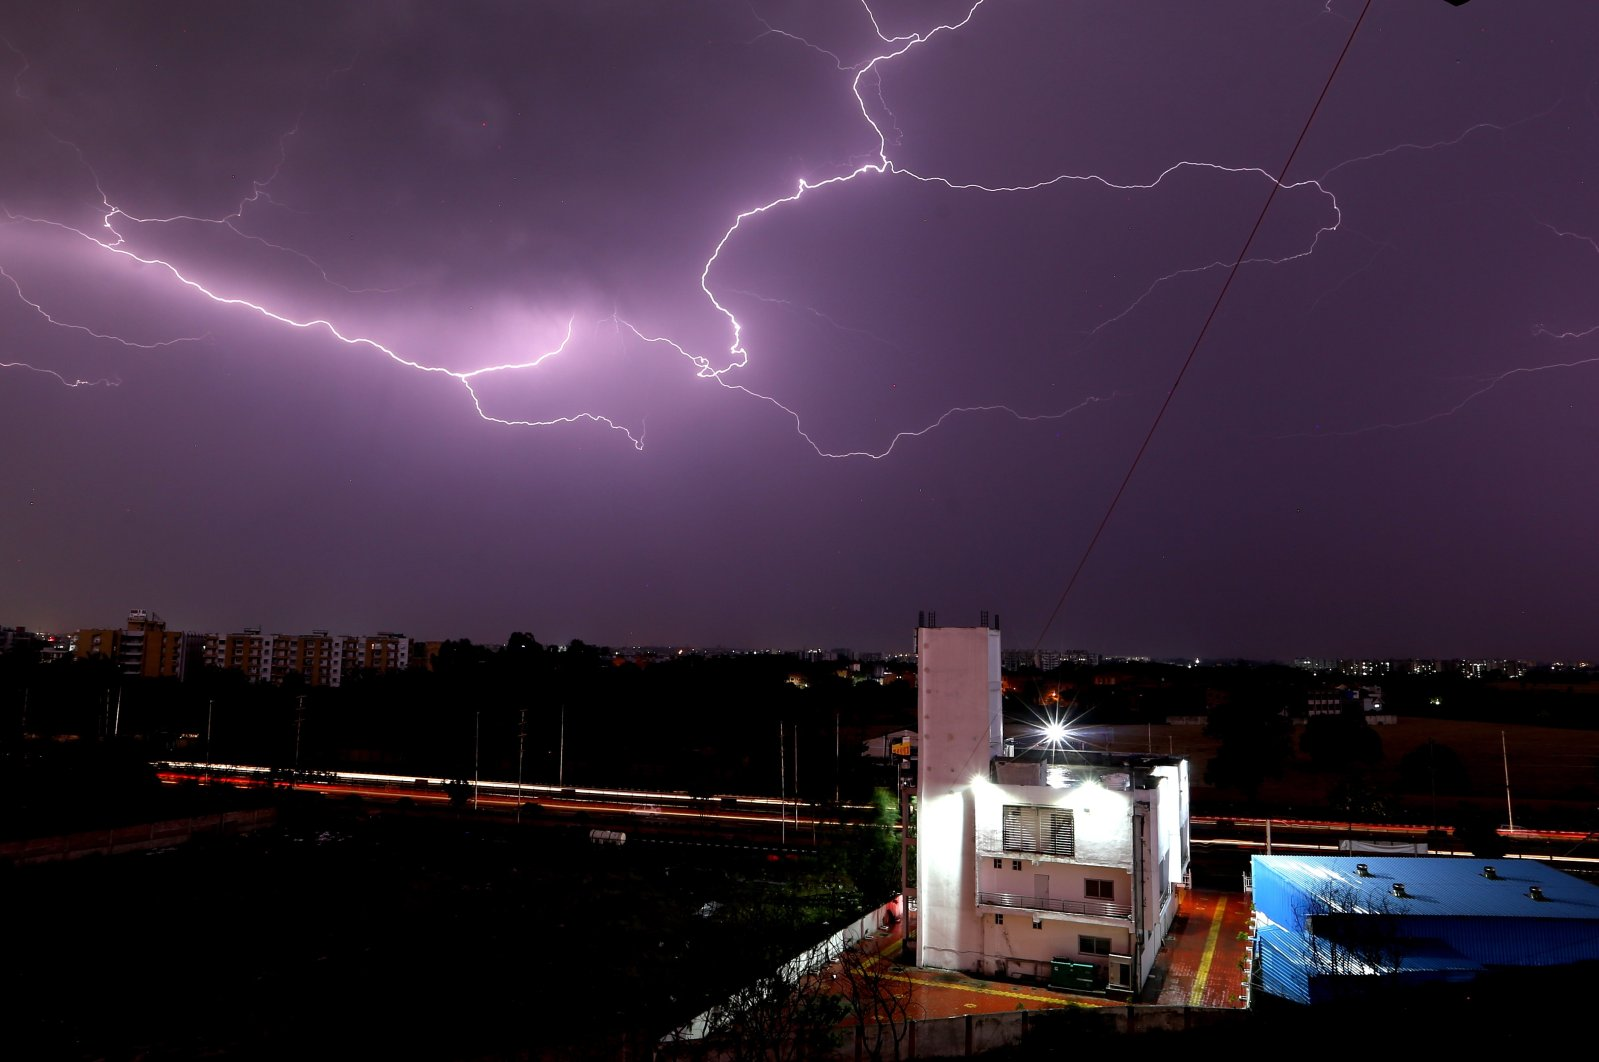 Lightning illuminates the sky during a thunderstorm in Bhopal, India, March 19, 2021. (EPA Photo)